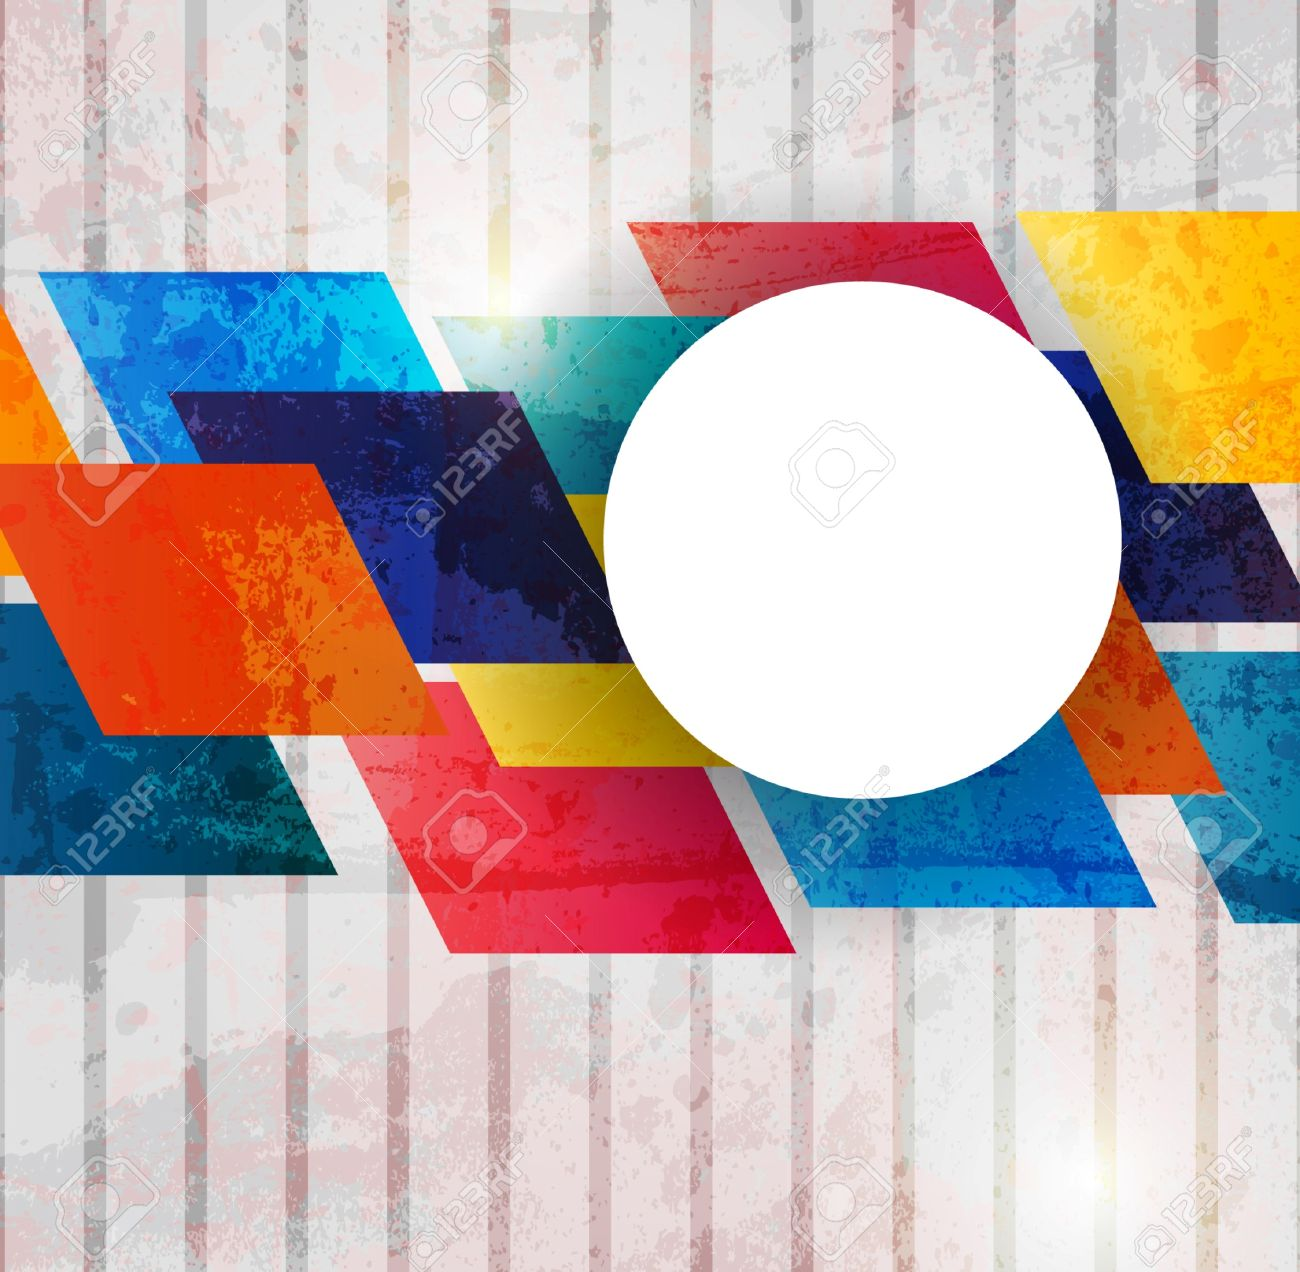 Retro modern abstraction in color. Abstract Vector Background Stock Vector - 10394628